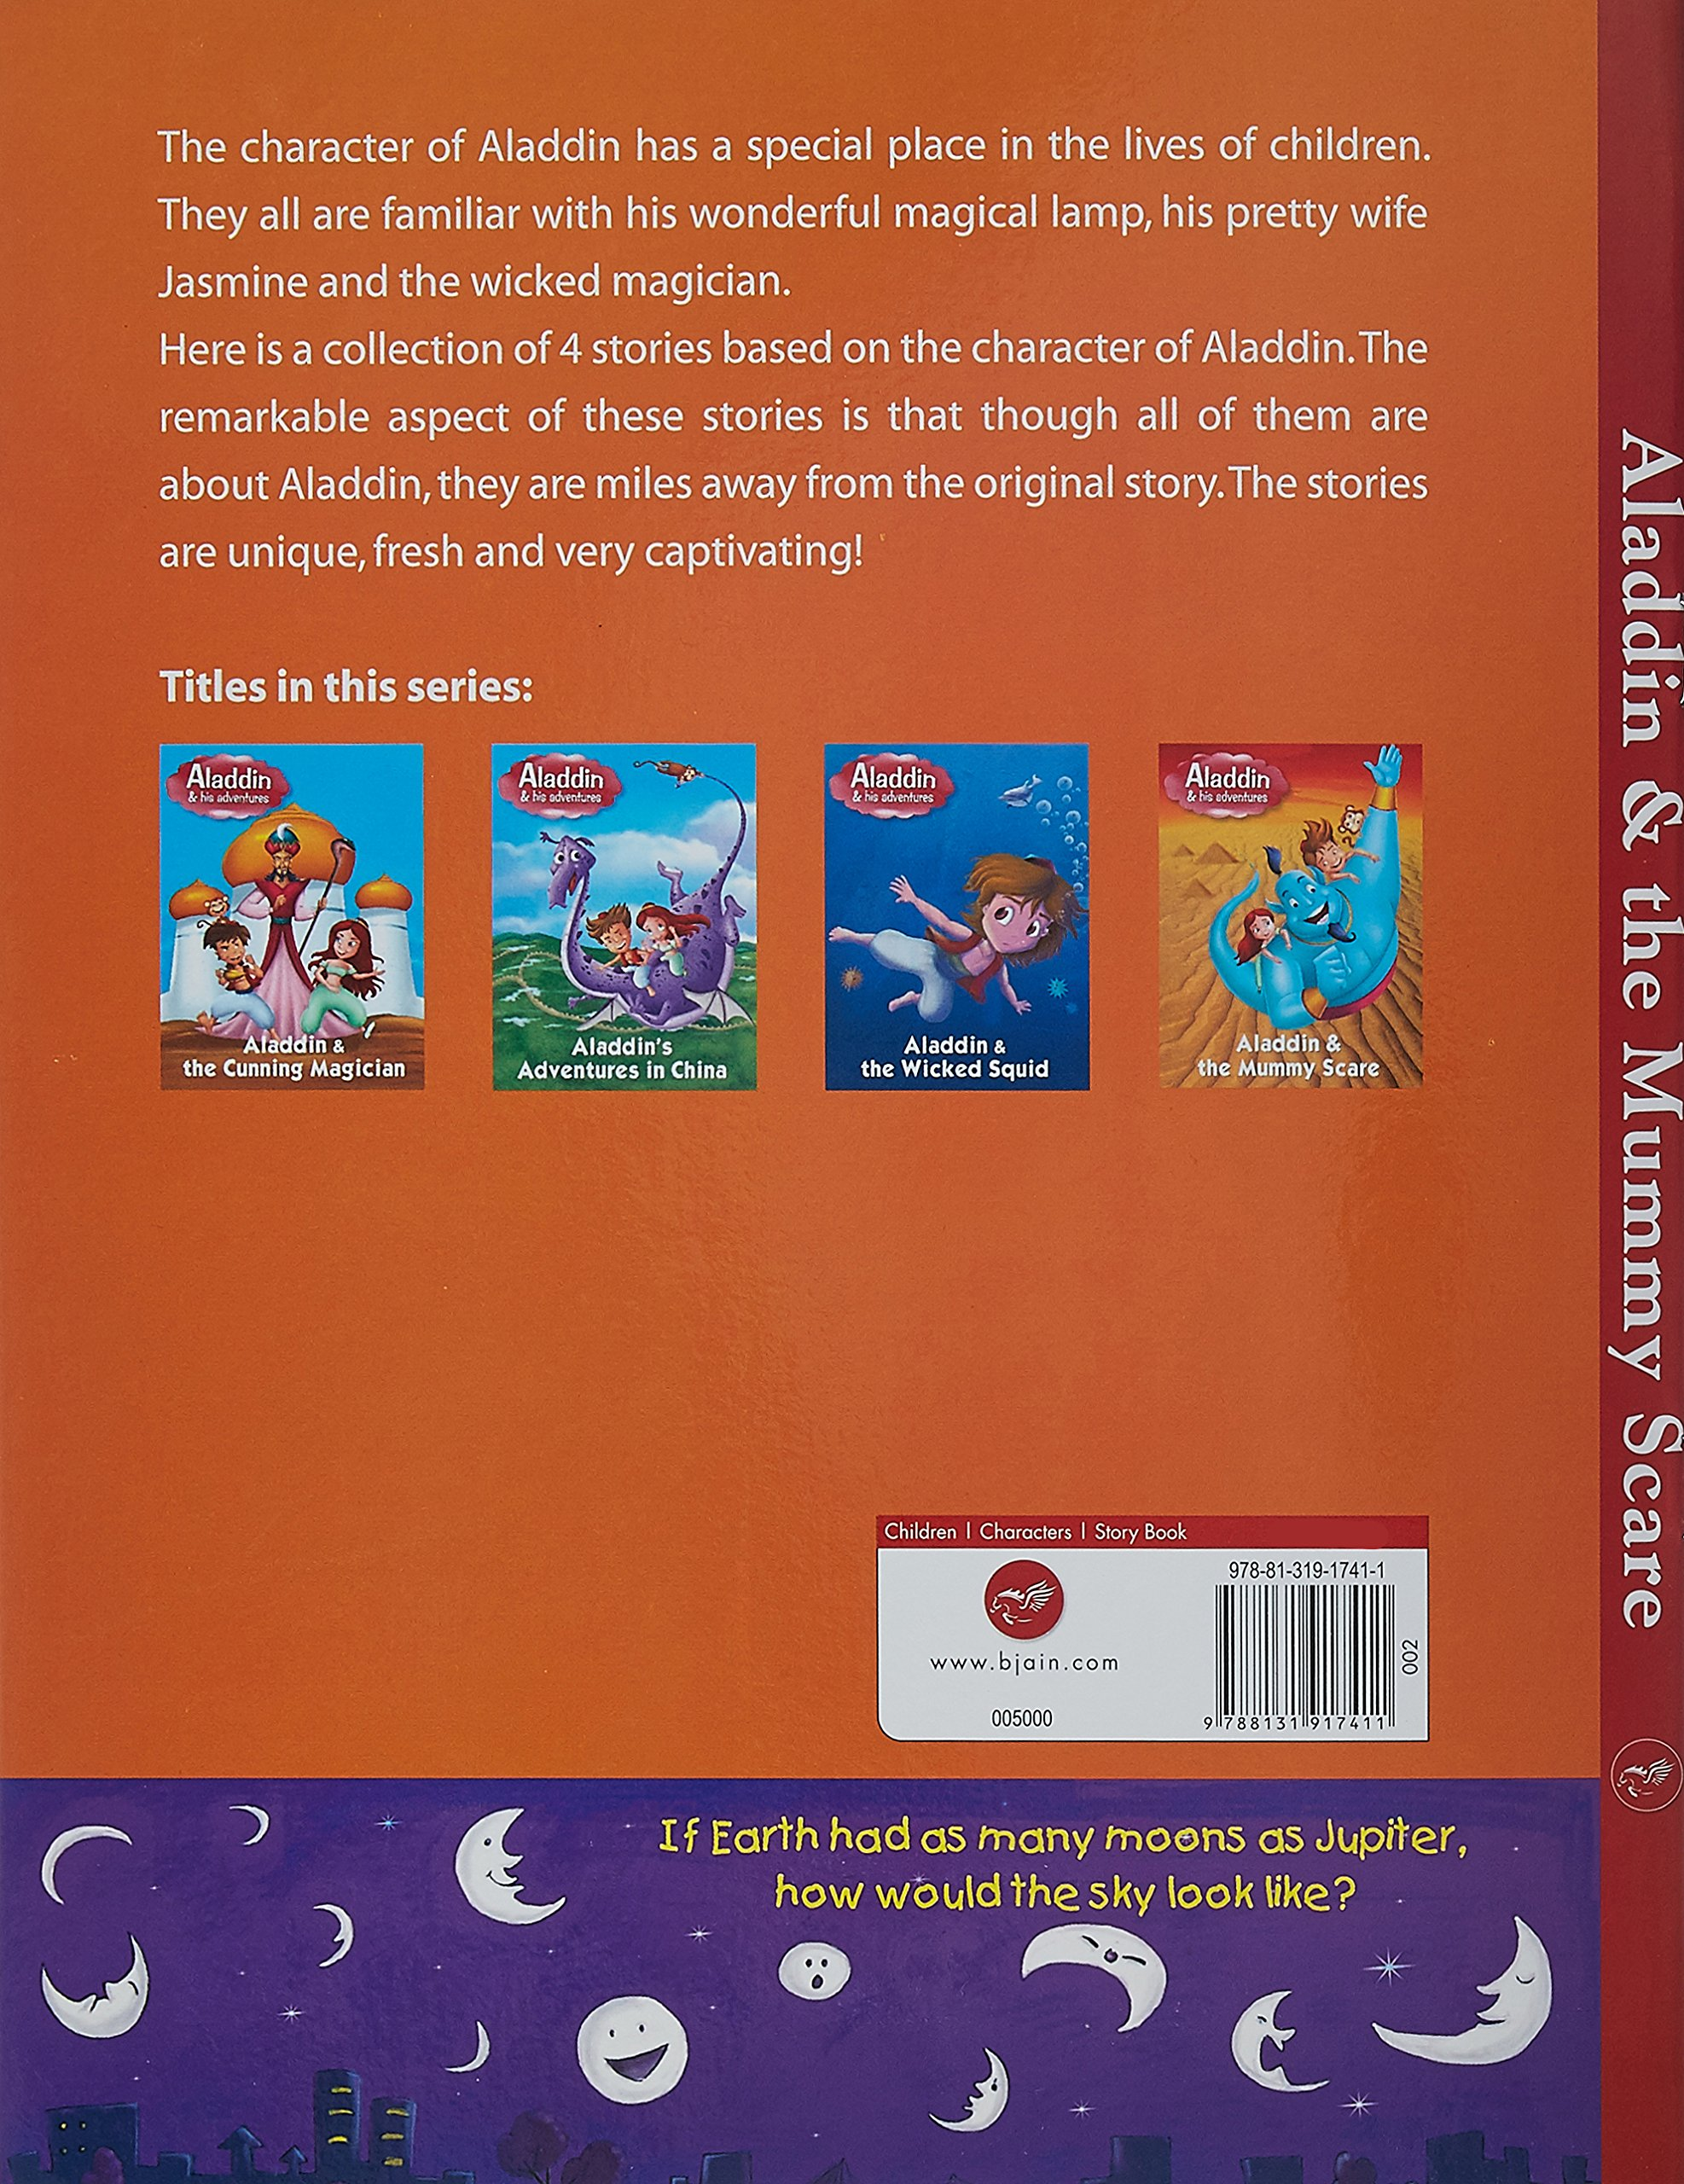 Buy Aladdin Mummy Scare Story Book Books Online At Of Aladin Low Prices In India Reviews Ratings